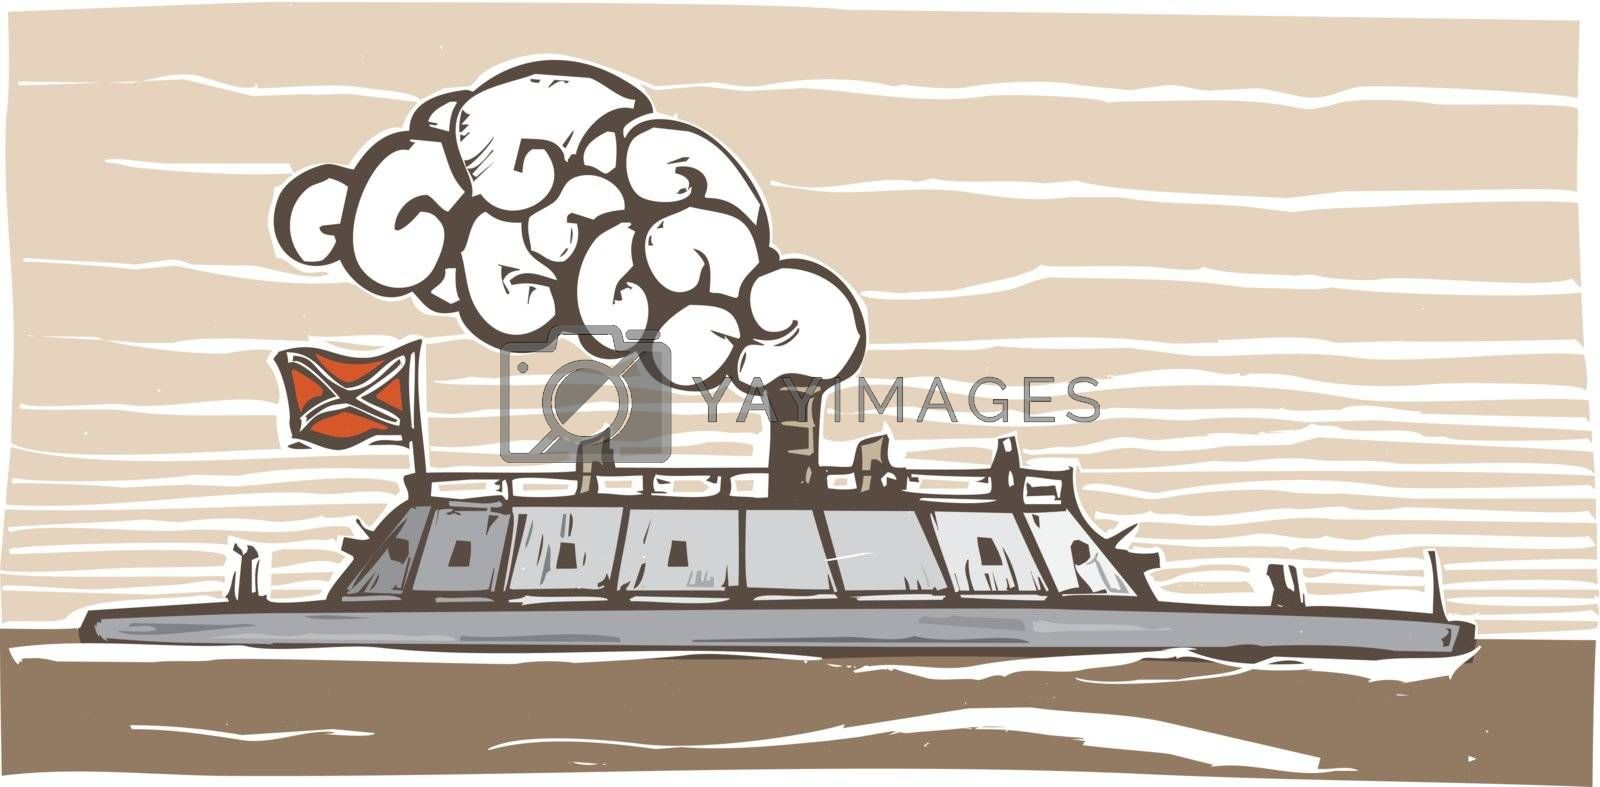 Woodcut style image of the Confederate Civil War Ironclad warship Virginia.